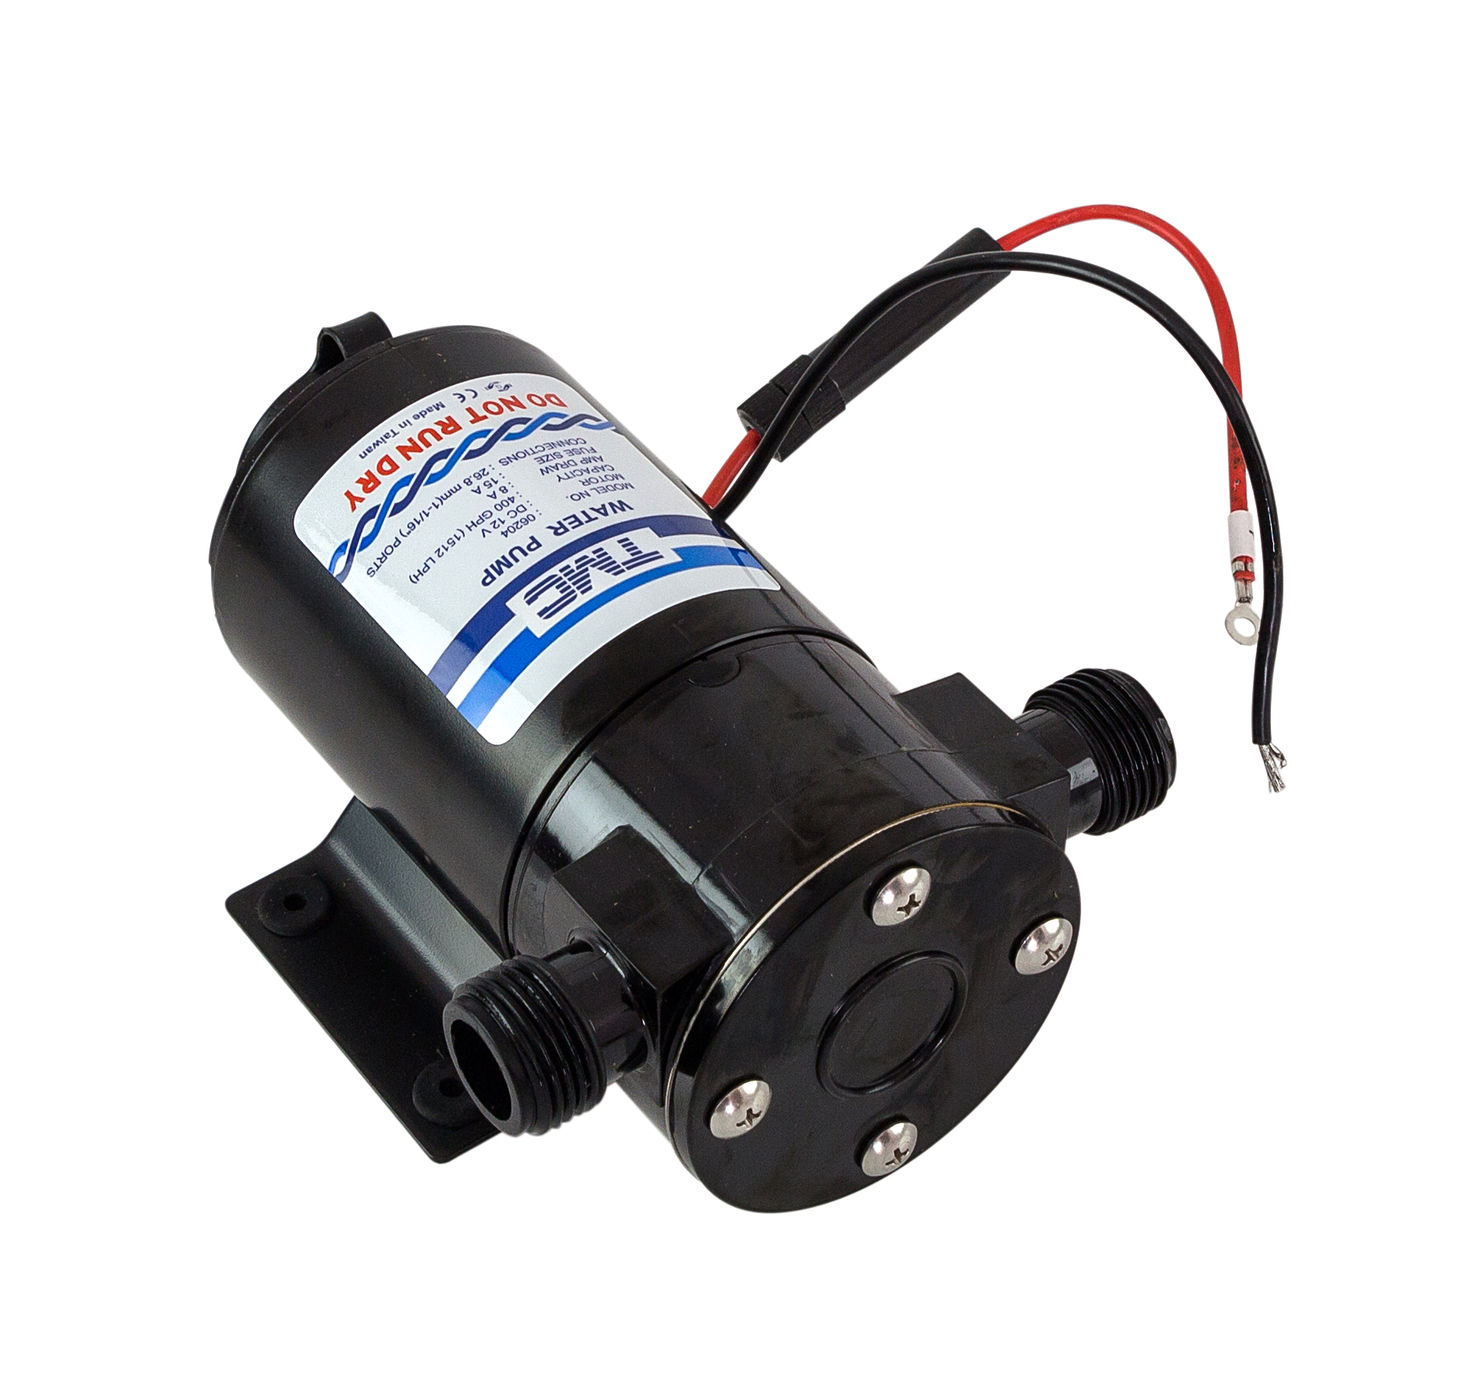 Water Supply Pump, 12v, 400gph (1514 L/h) 1006312